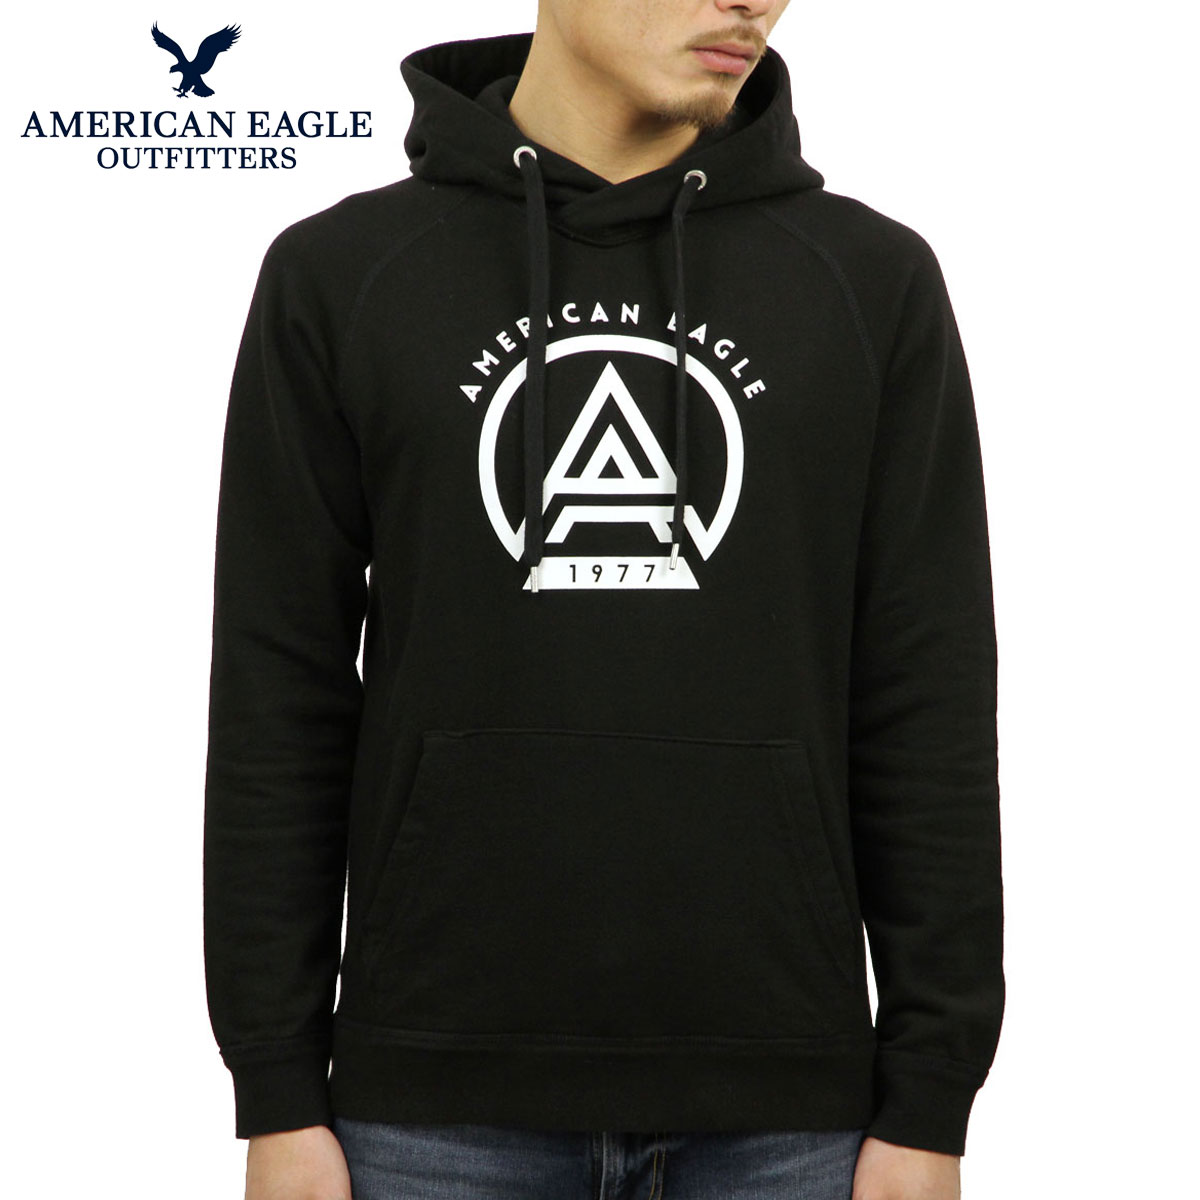 6df47a84 American eagle AMERICAN EAGLE regular article men pullover parka AE FLEECE  THROWBACK COTTON SWEATSHIRT 0193- ...